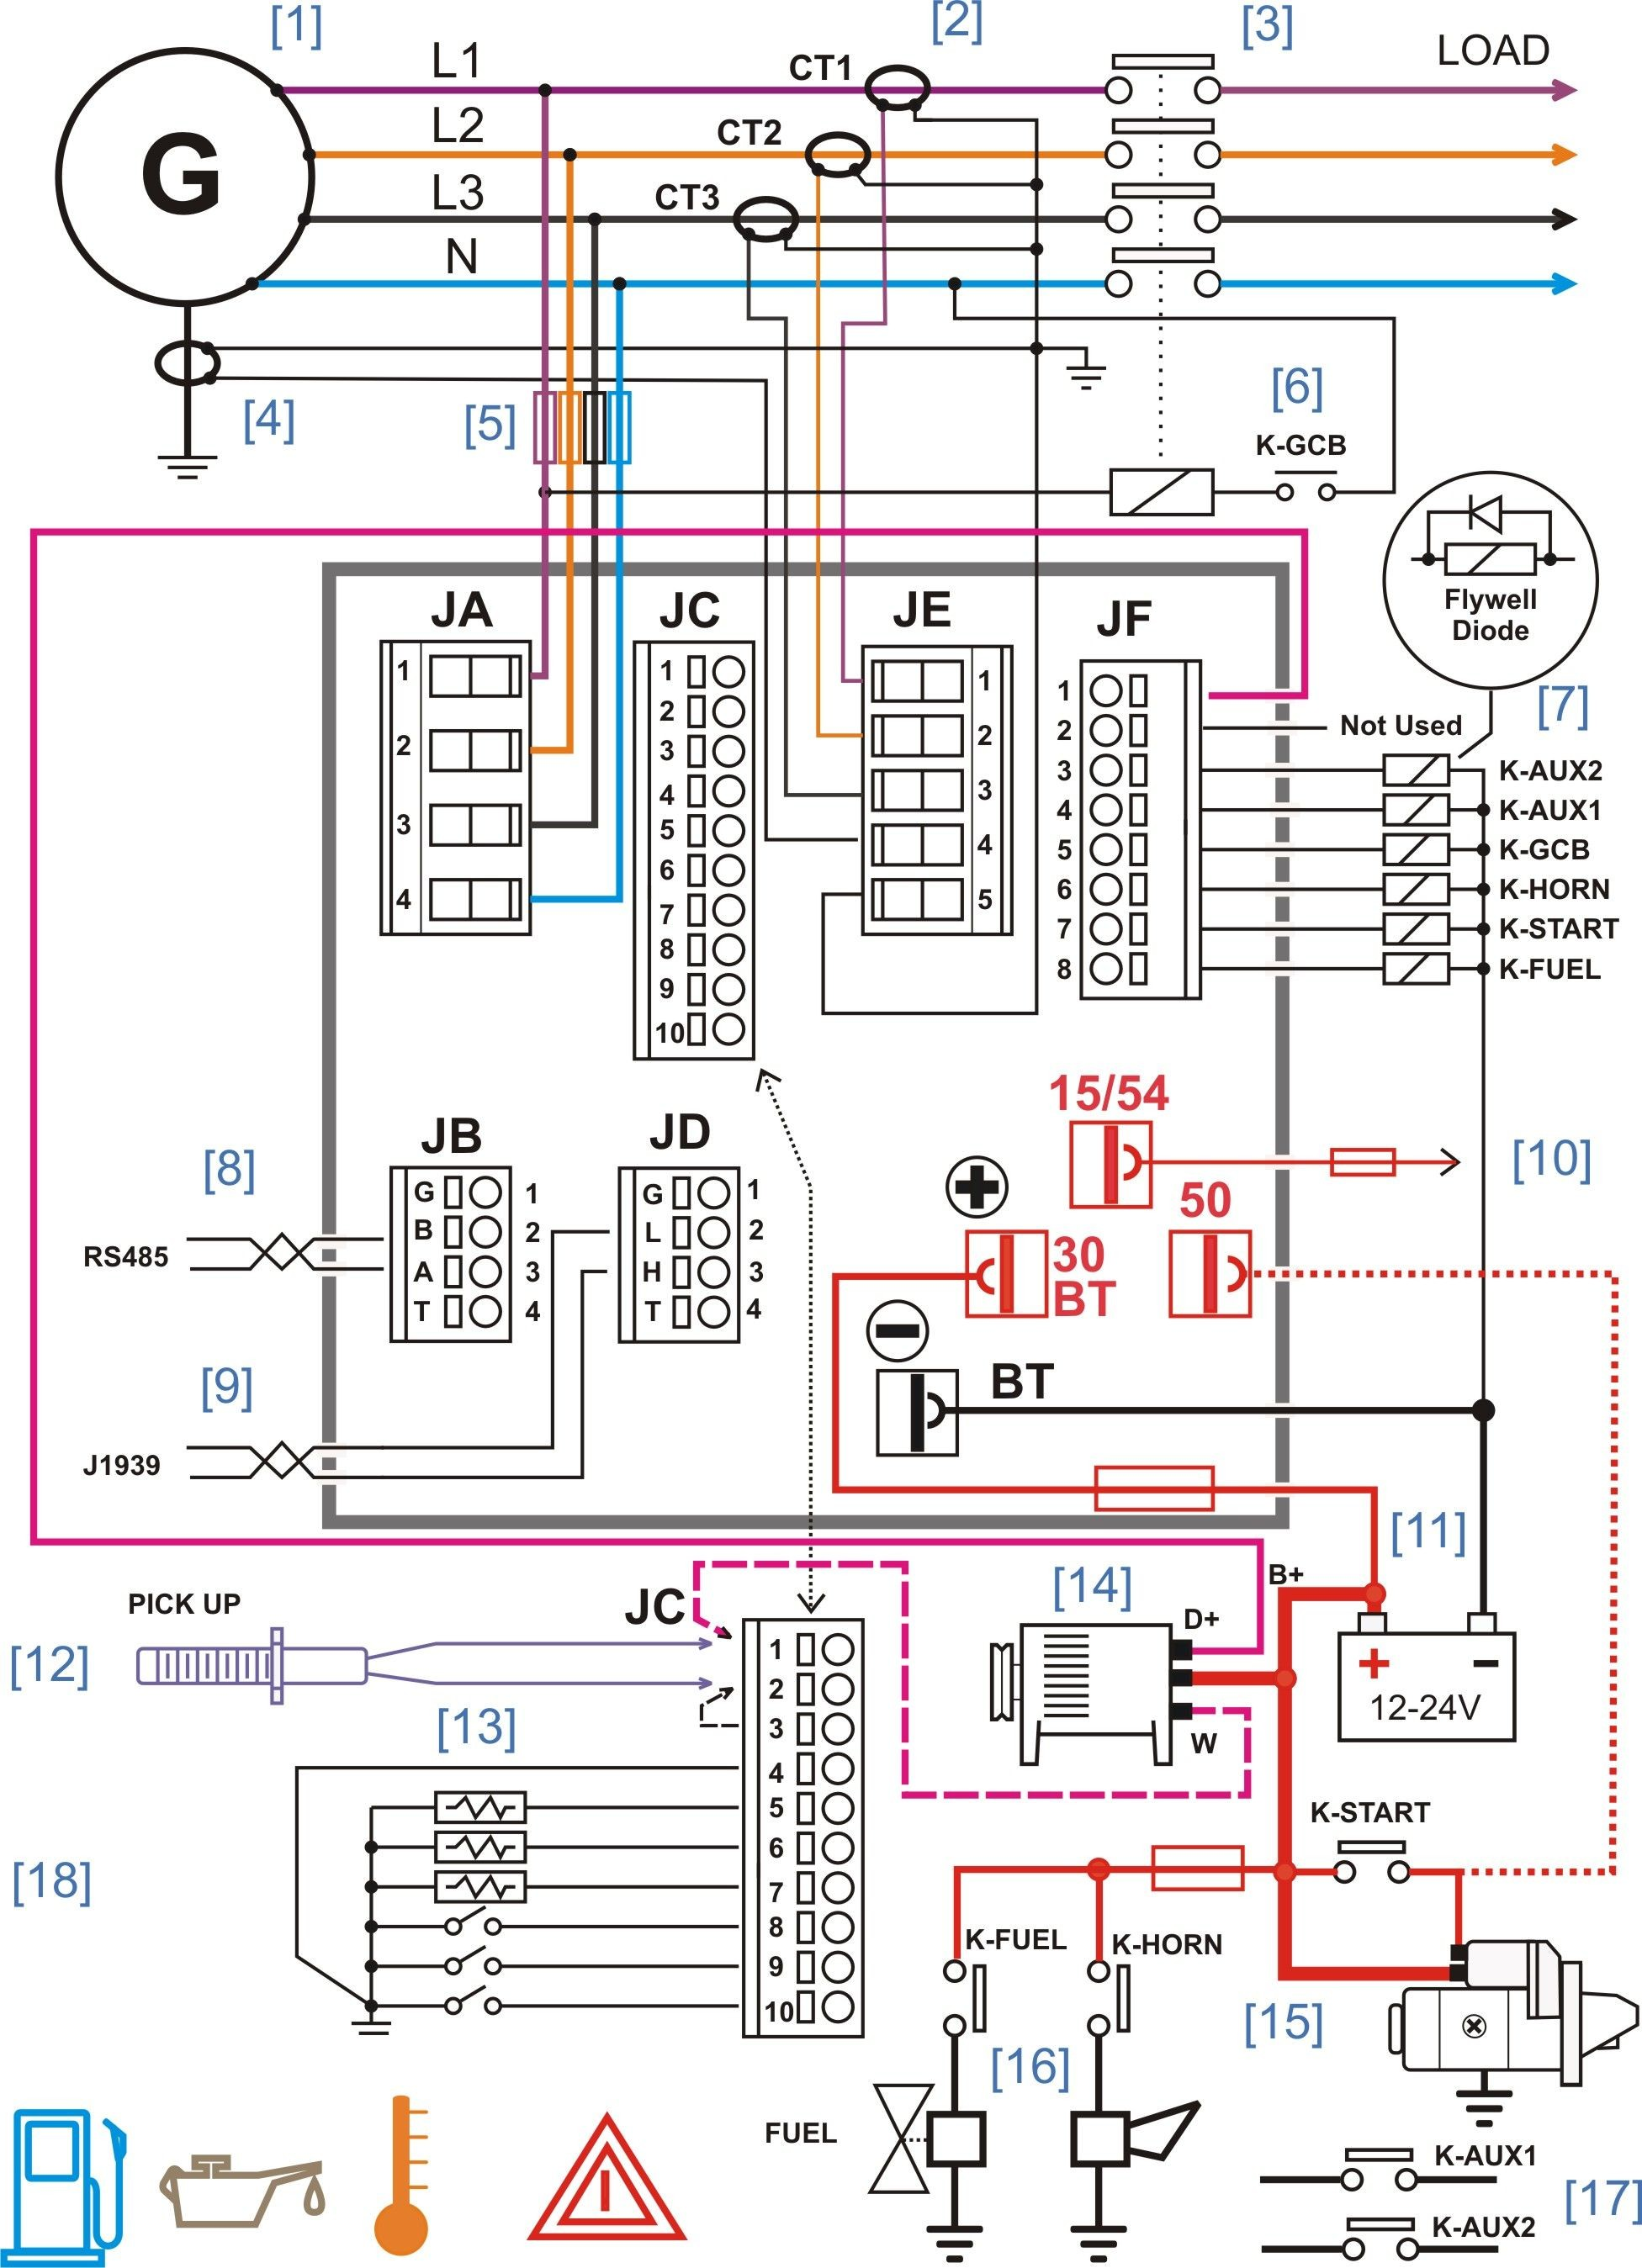 canon generator wiring trusted wiring diagram u2022 rh soulmatestyle co home generator wiring schematic home generator electrical wiring